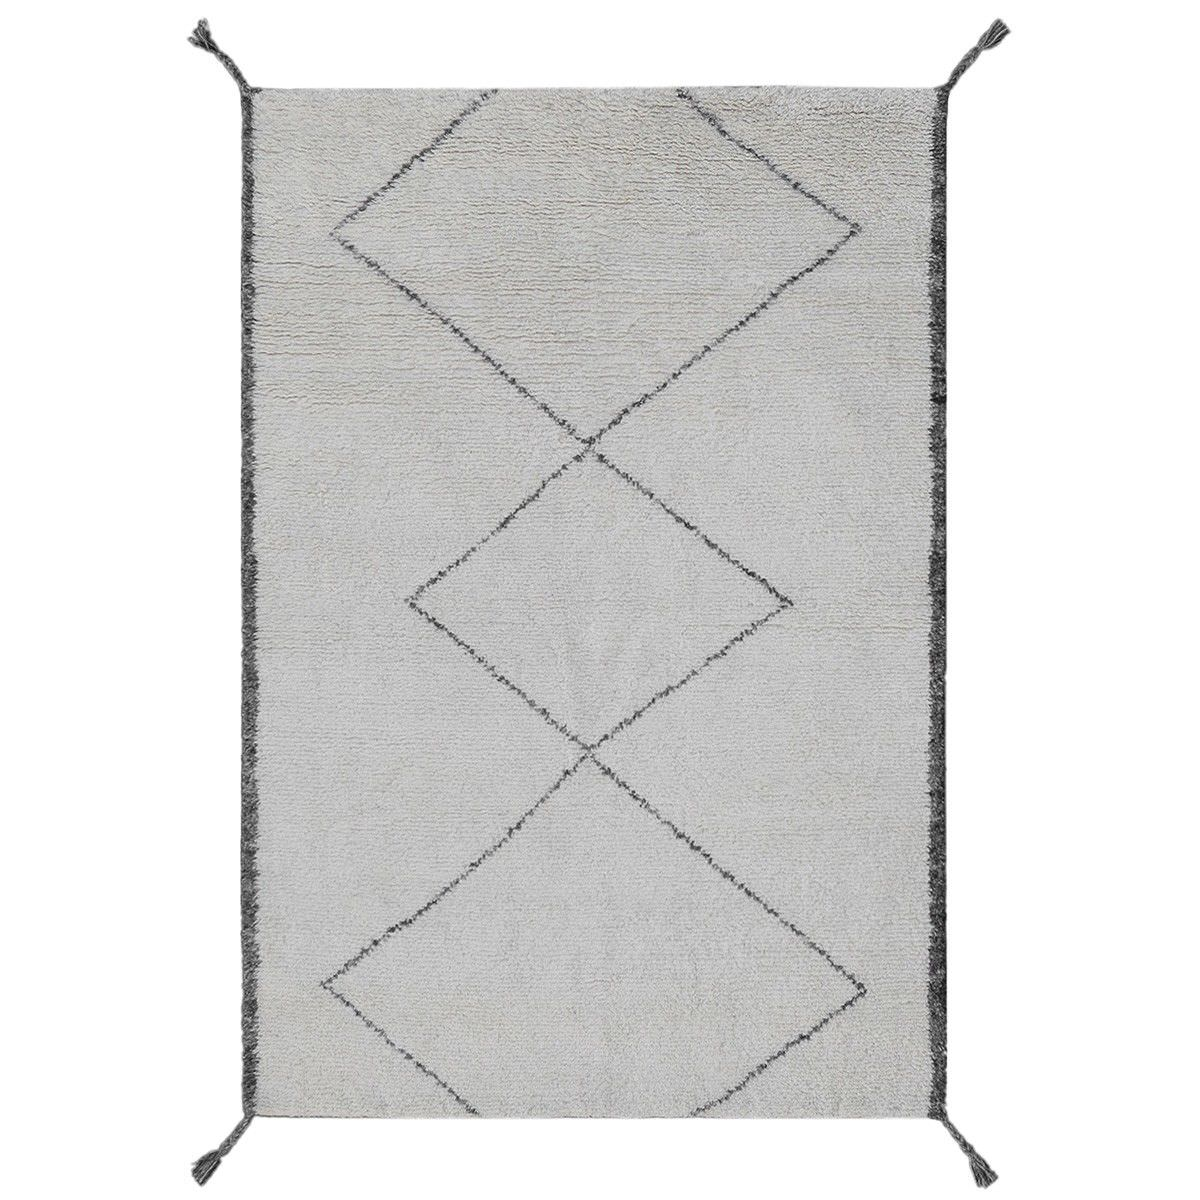 Sachi Hand Knotted Wool Rug, 230x160cm